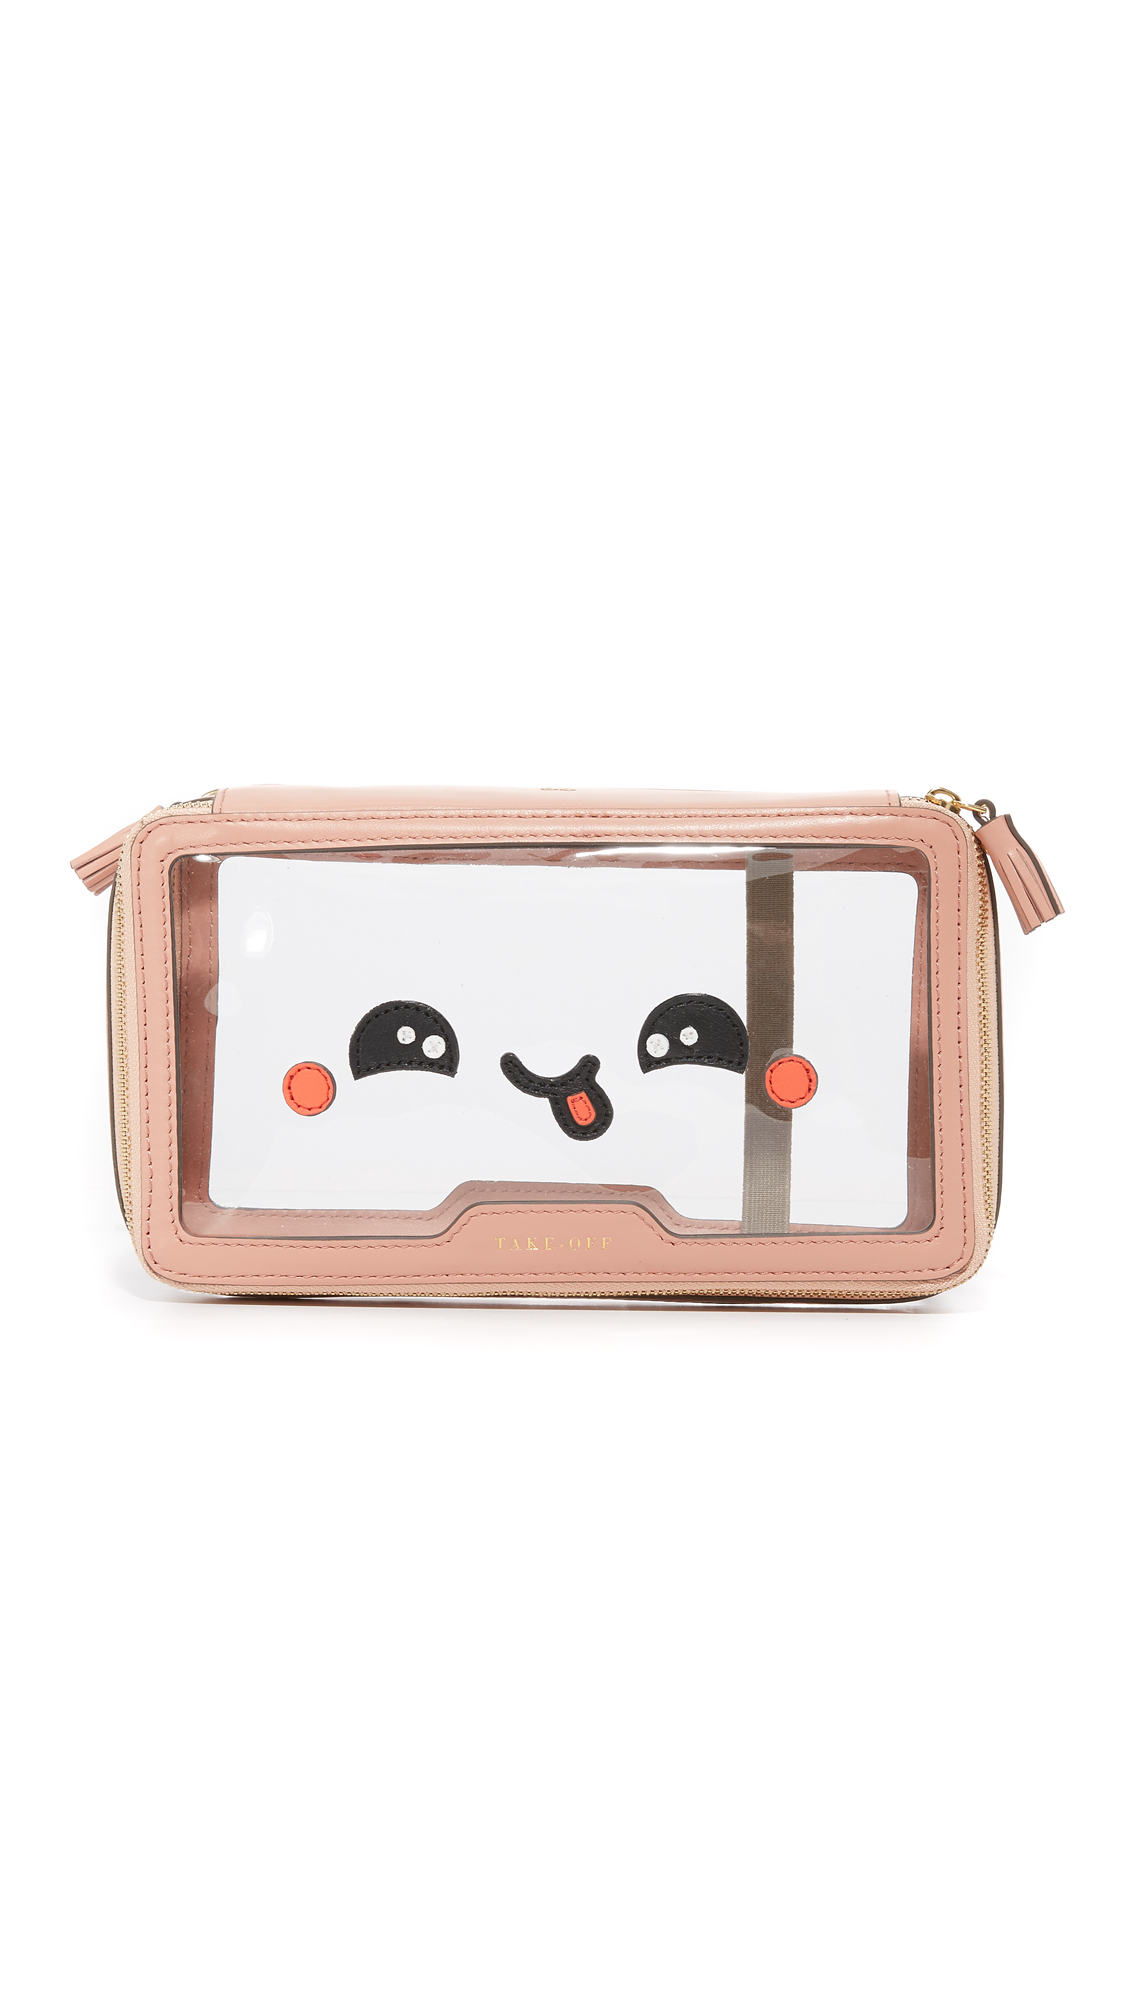 anya hindmarch female 243738 anya hindmarch inflight kawaii yum pouch clearpowder pink